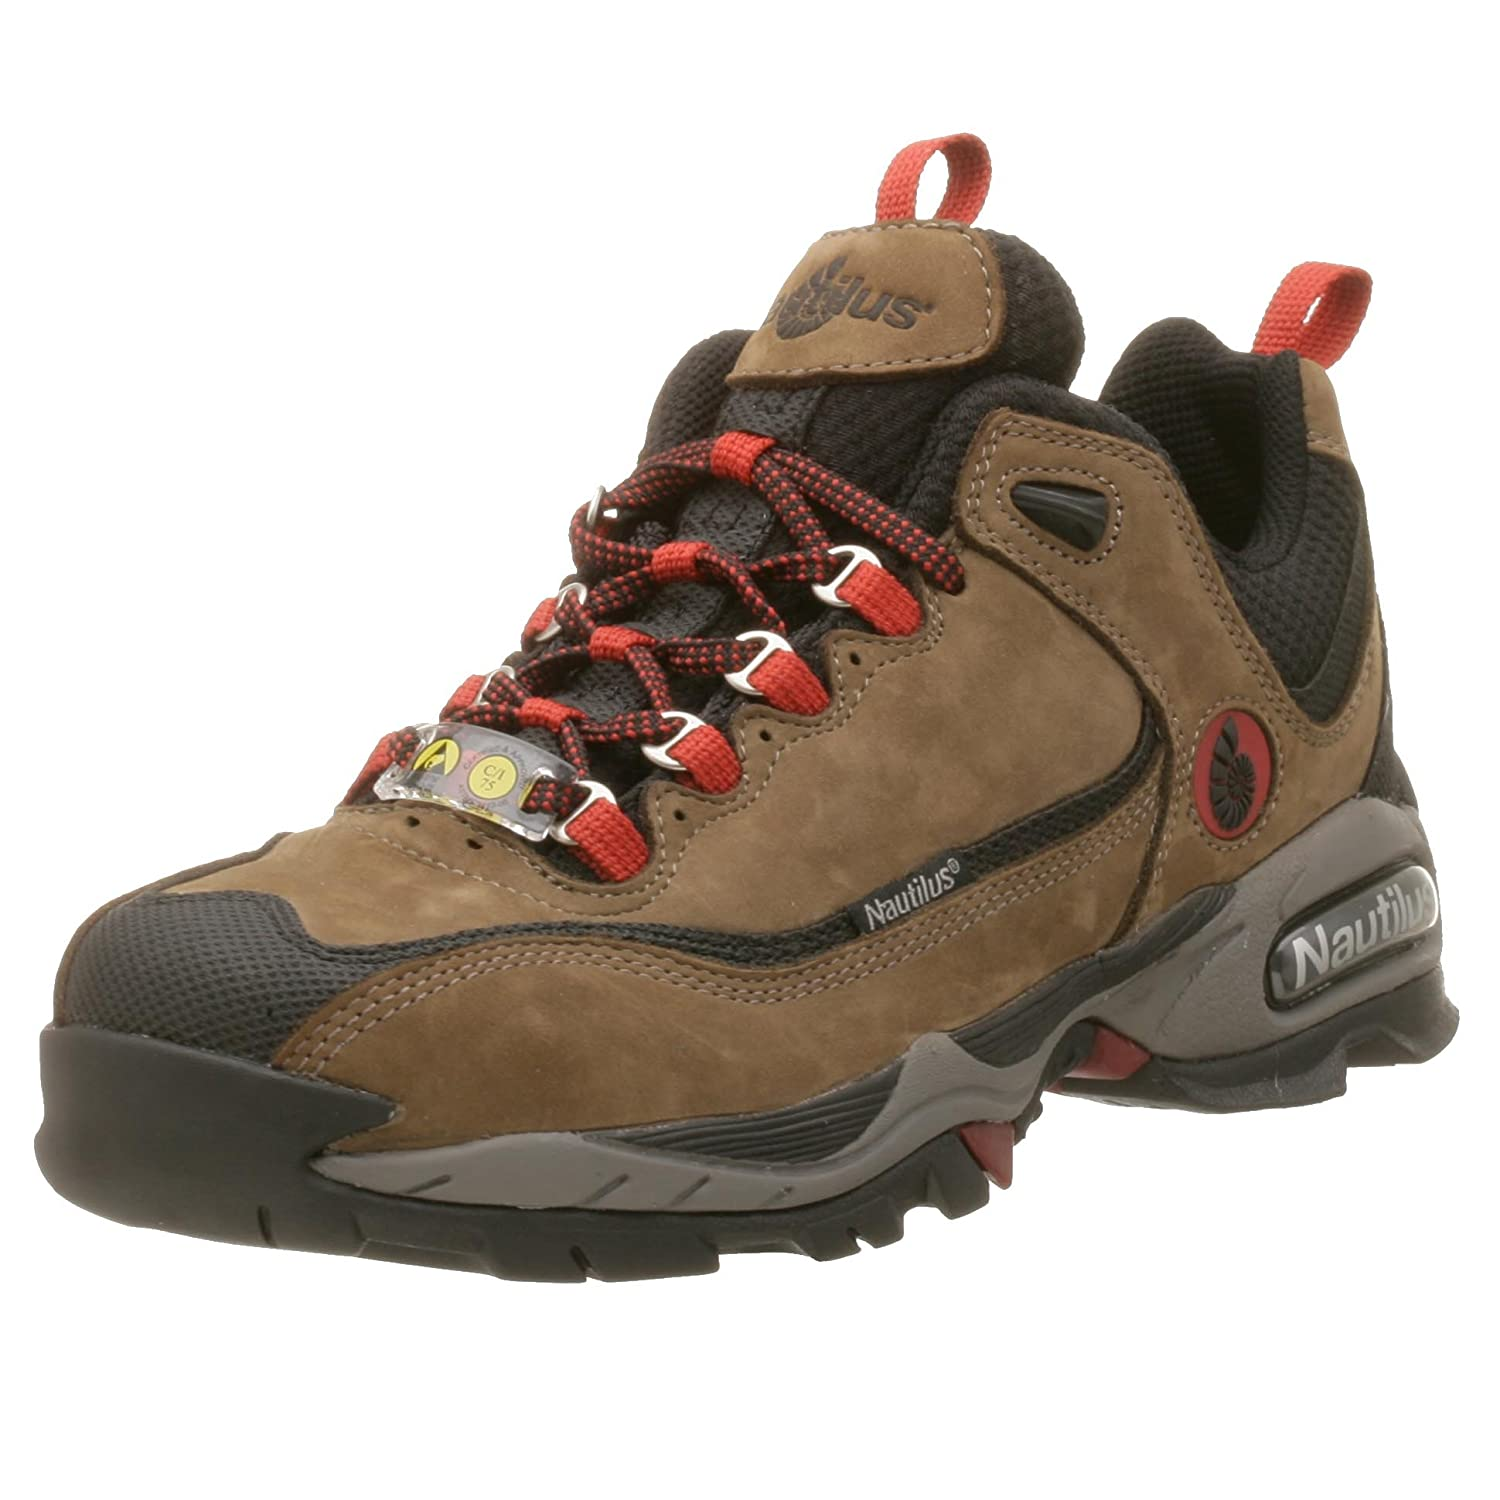 Nautilus Safety Footwear メンズ B000IX6USU 11 W/XW|モス モス 11 W/XW